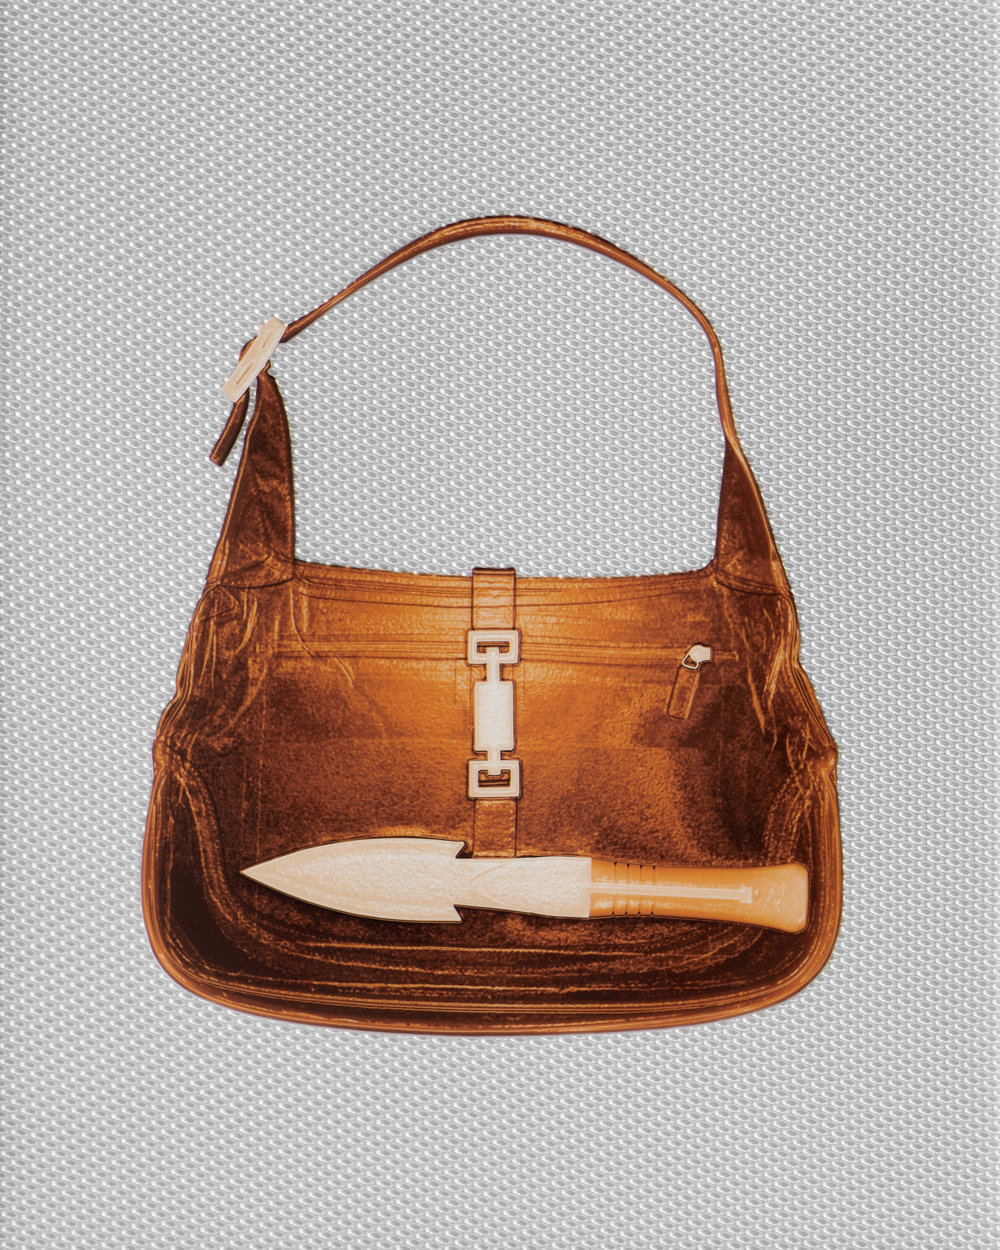 Amber Gucci Handbag With Knife